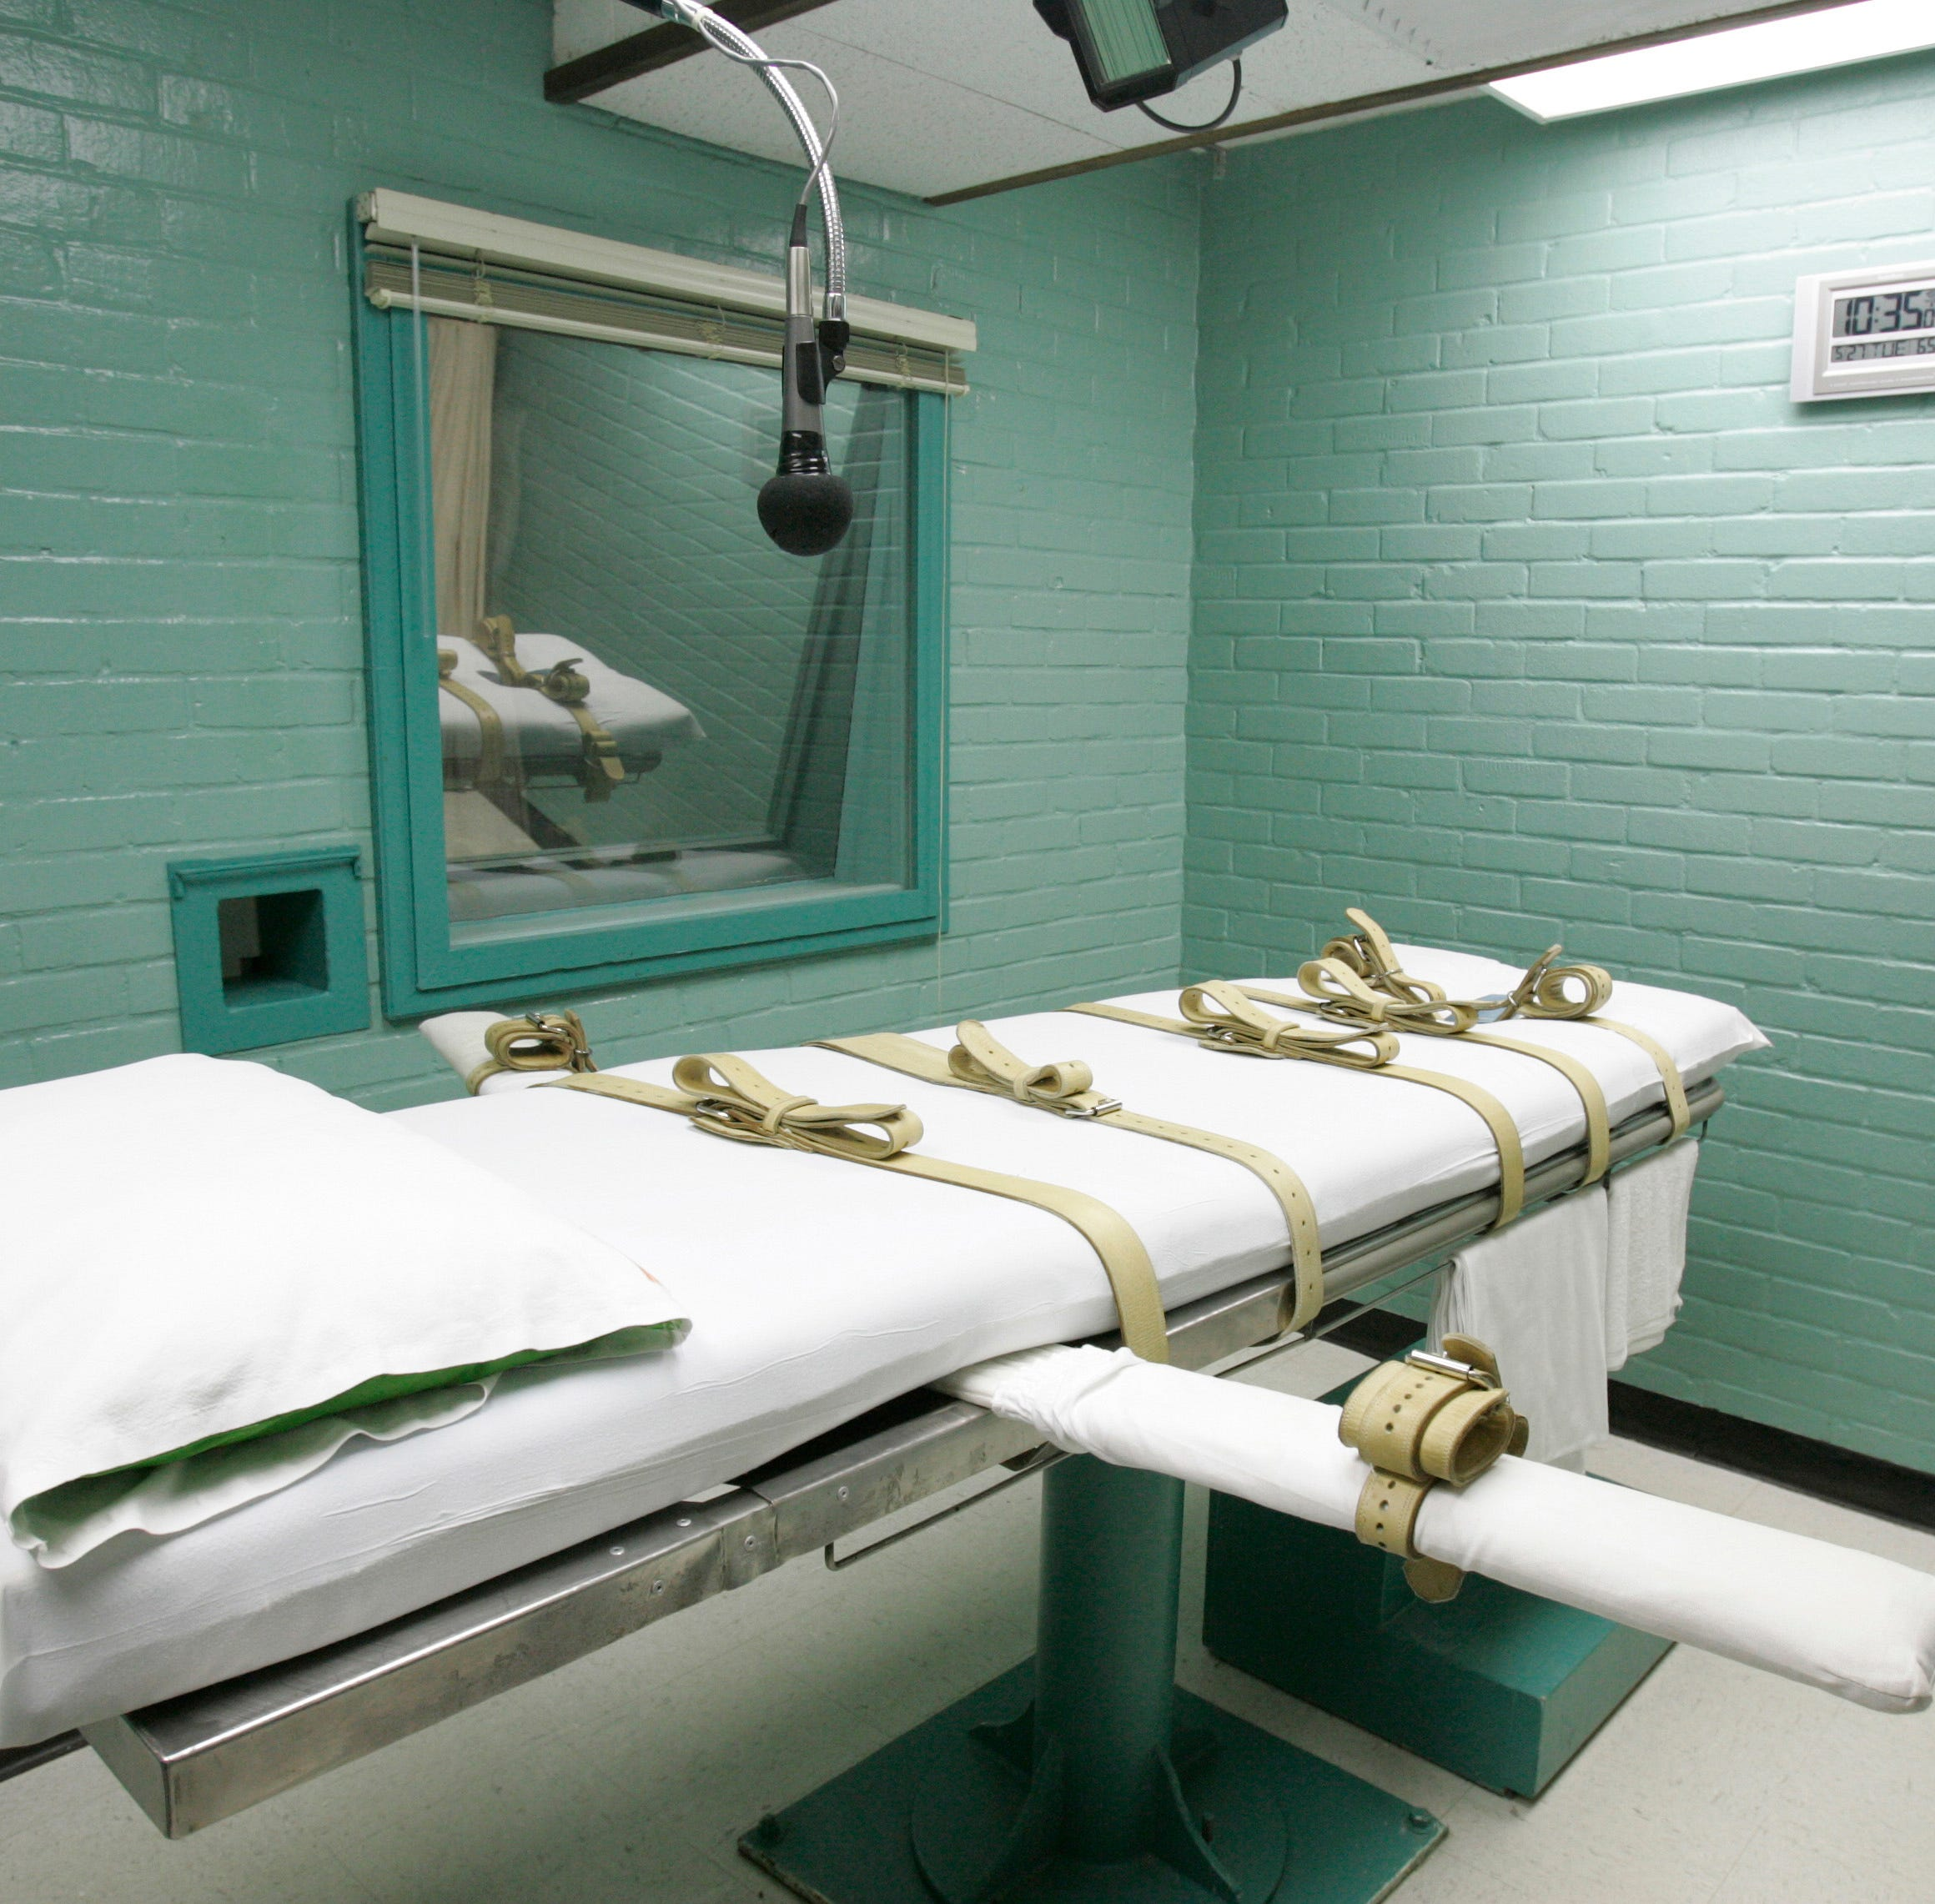 BREAKING: Senate panel OKs bill to abolish La.'s death penalty